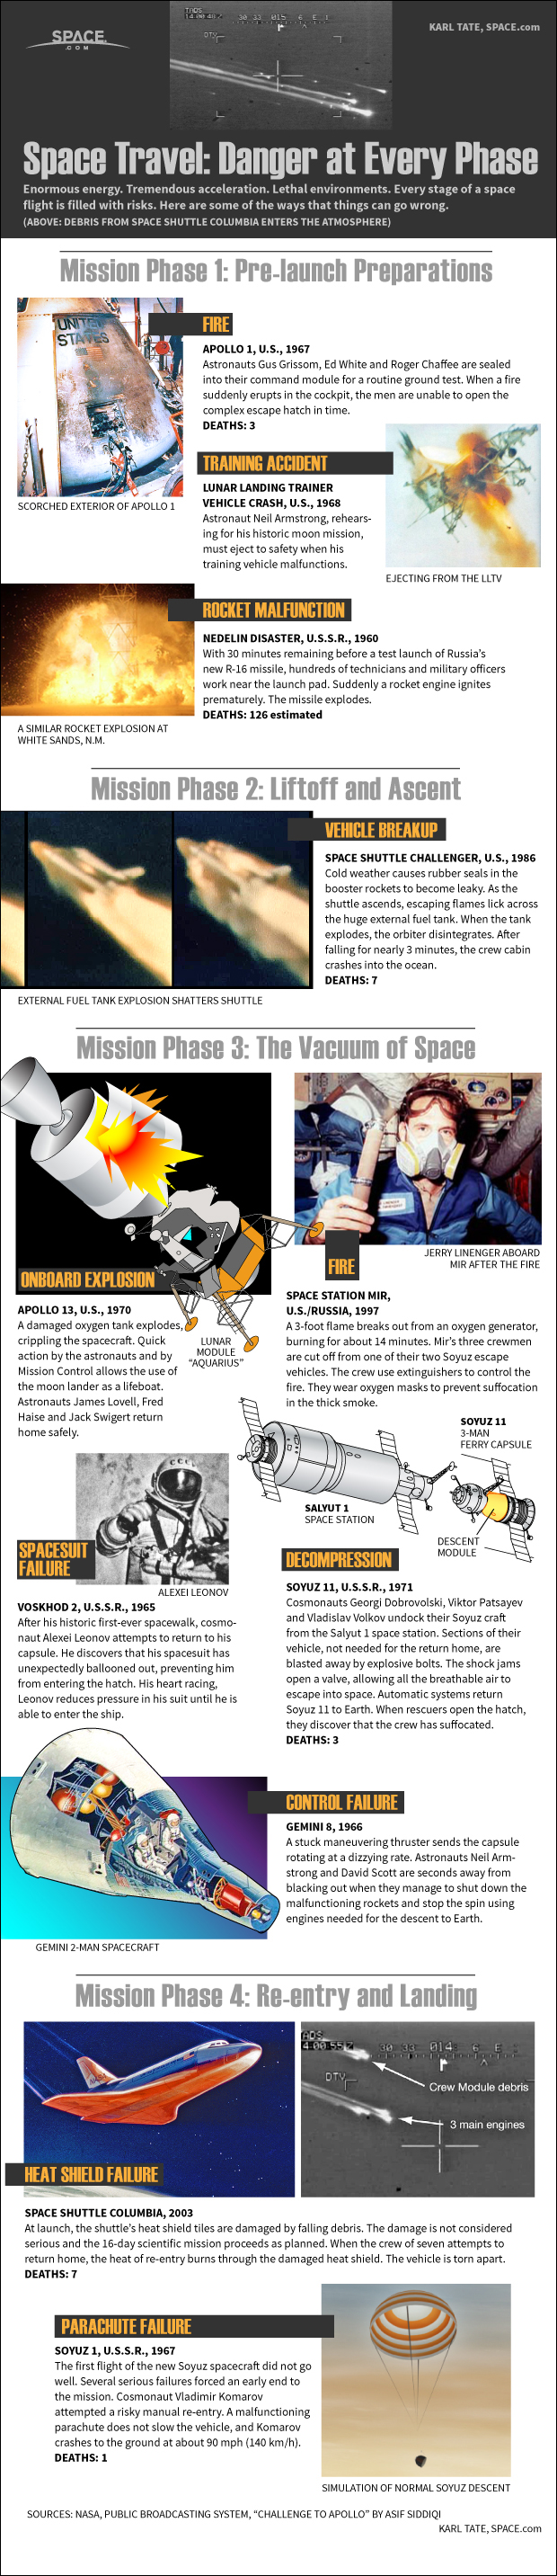 Infographic: Some of the most harrowing space disasters that have occurred.